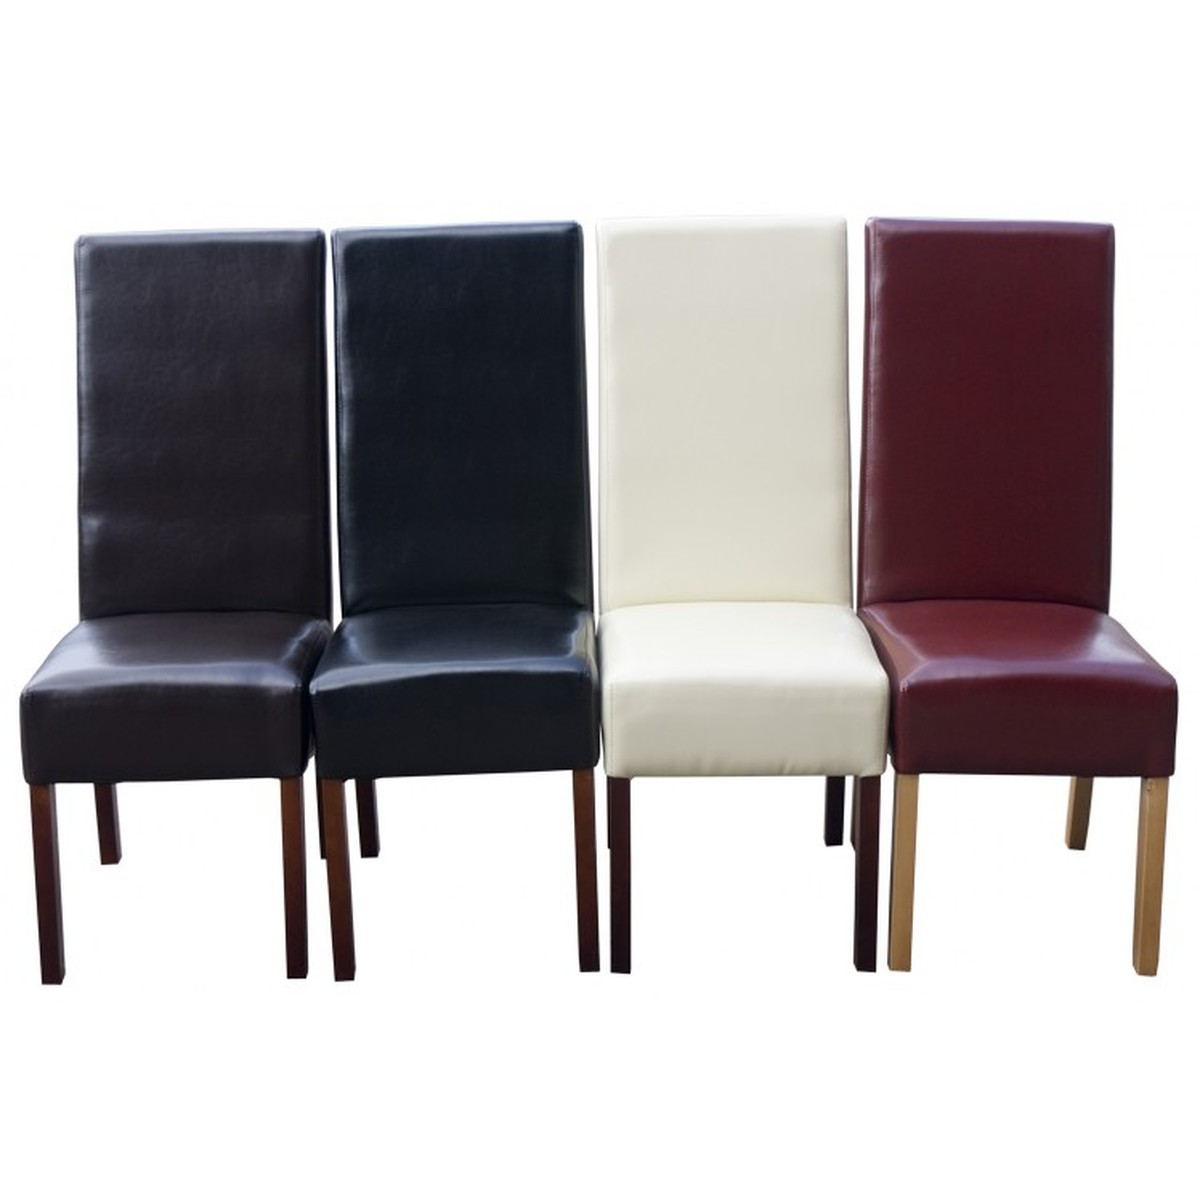 hotel chairs for sale office chair home secondhand furniture dining special offer